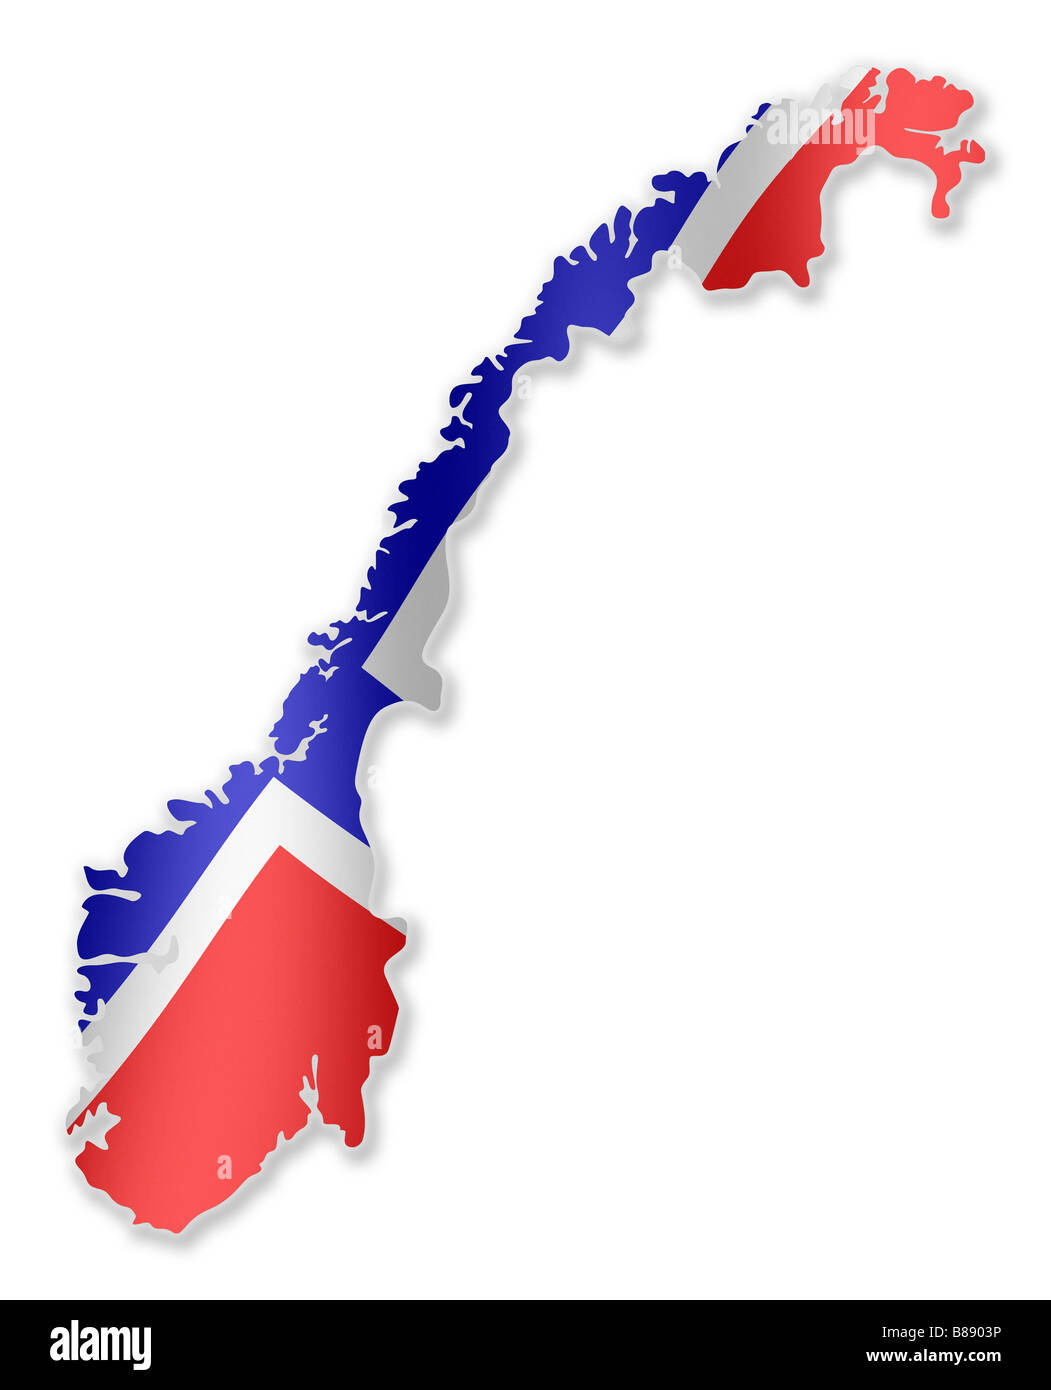 Norway Norwegian Country Map Outline With National Flag Inside - Norway map outline